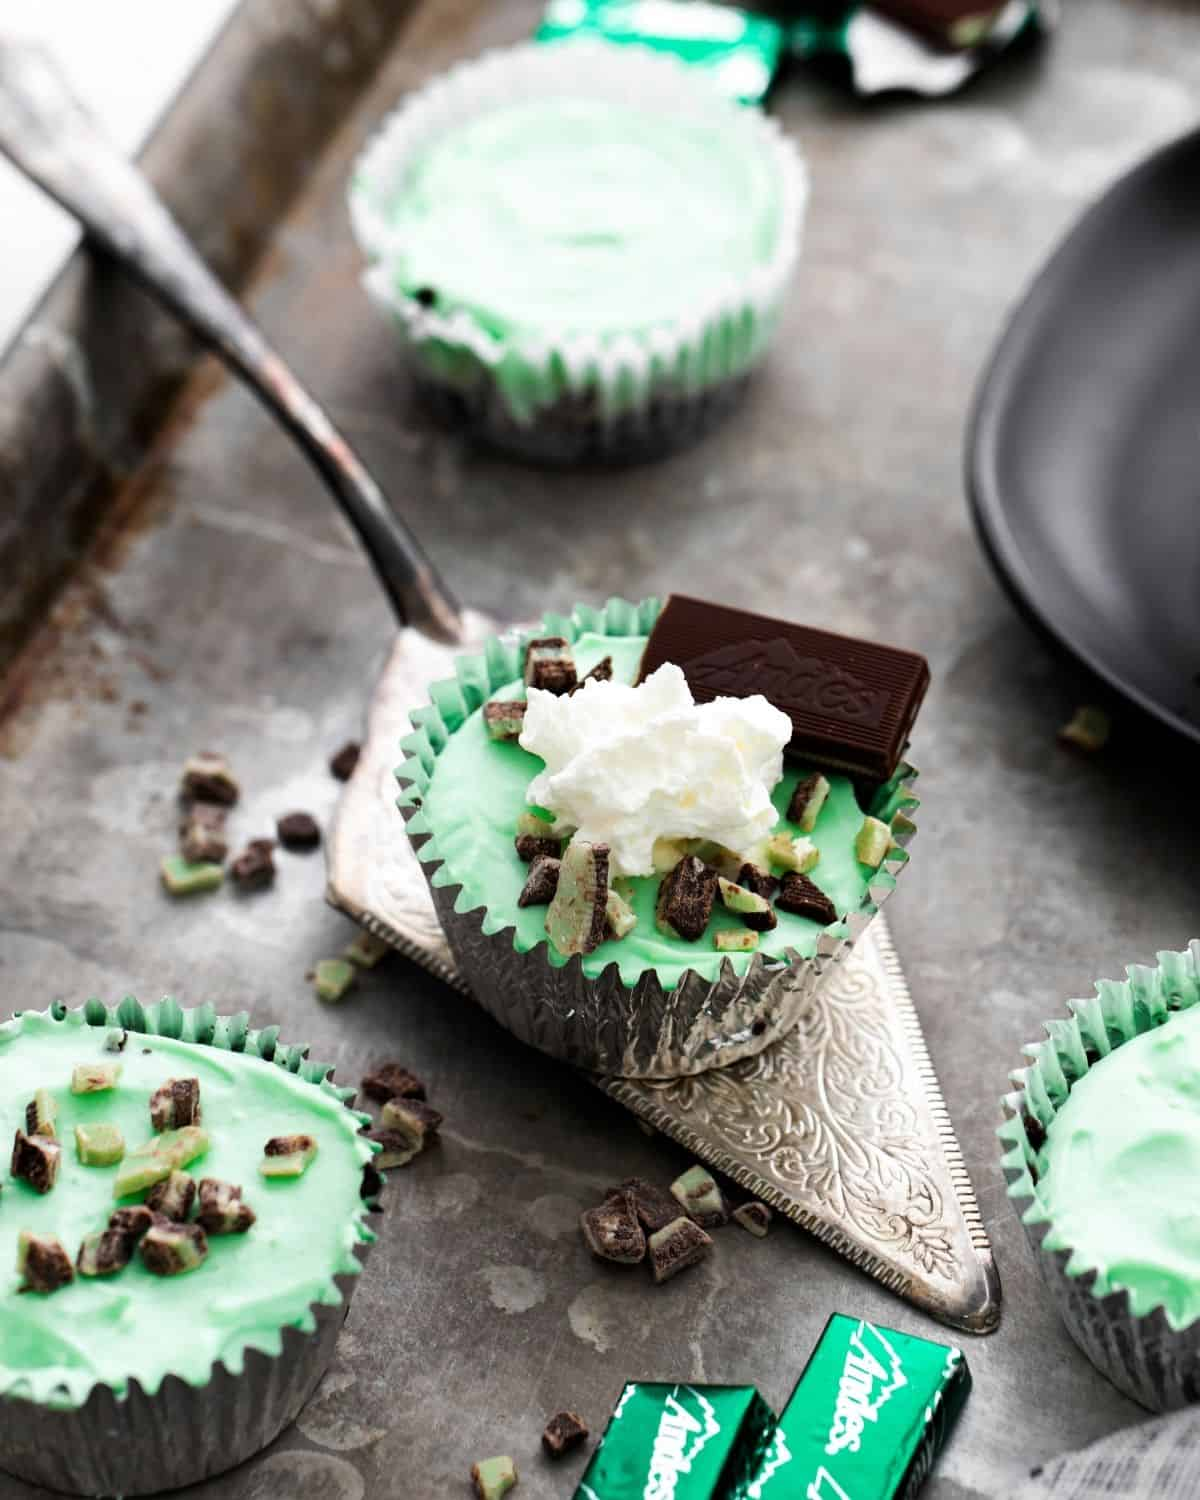 A grey platter with a few mini cheesecakes in cupcake liners. In the middle of the photo is a silver serving spoon with a whipped cream and mint decorated mini cheesecake in an aluminum foil cupcake liner.